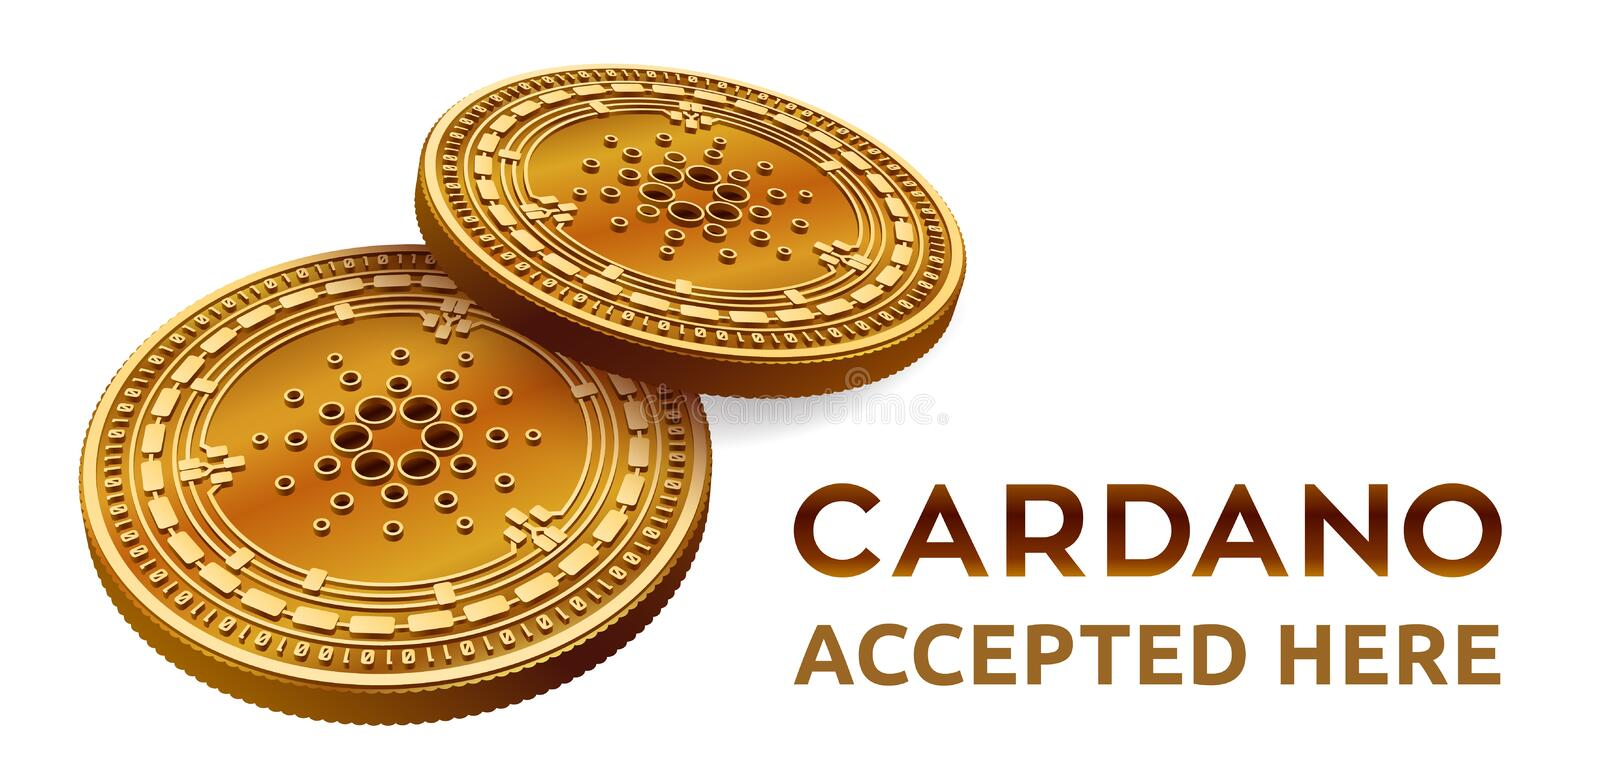 Cardano. Accepted sign emblem. Crypto currency. Golden coins with Cardano symbol isolated on white background. 3D isometric Physic stock illustration